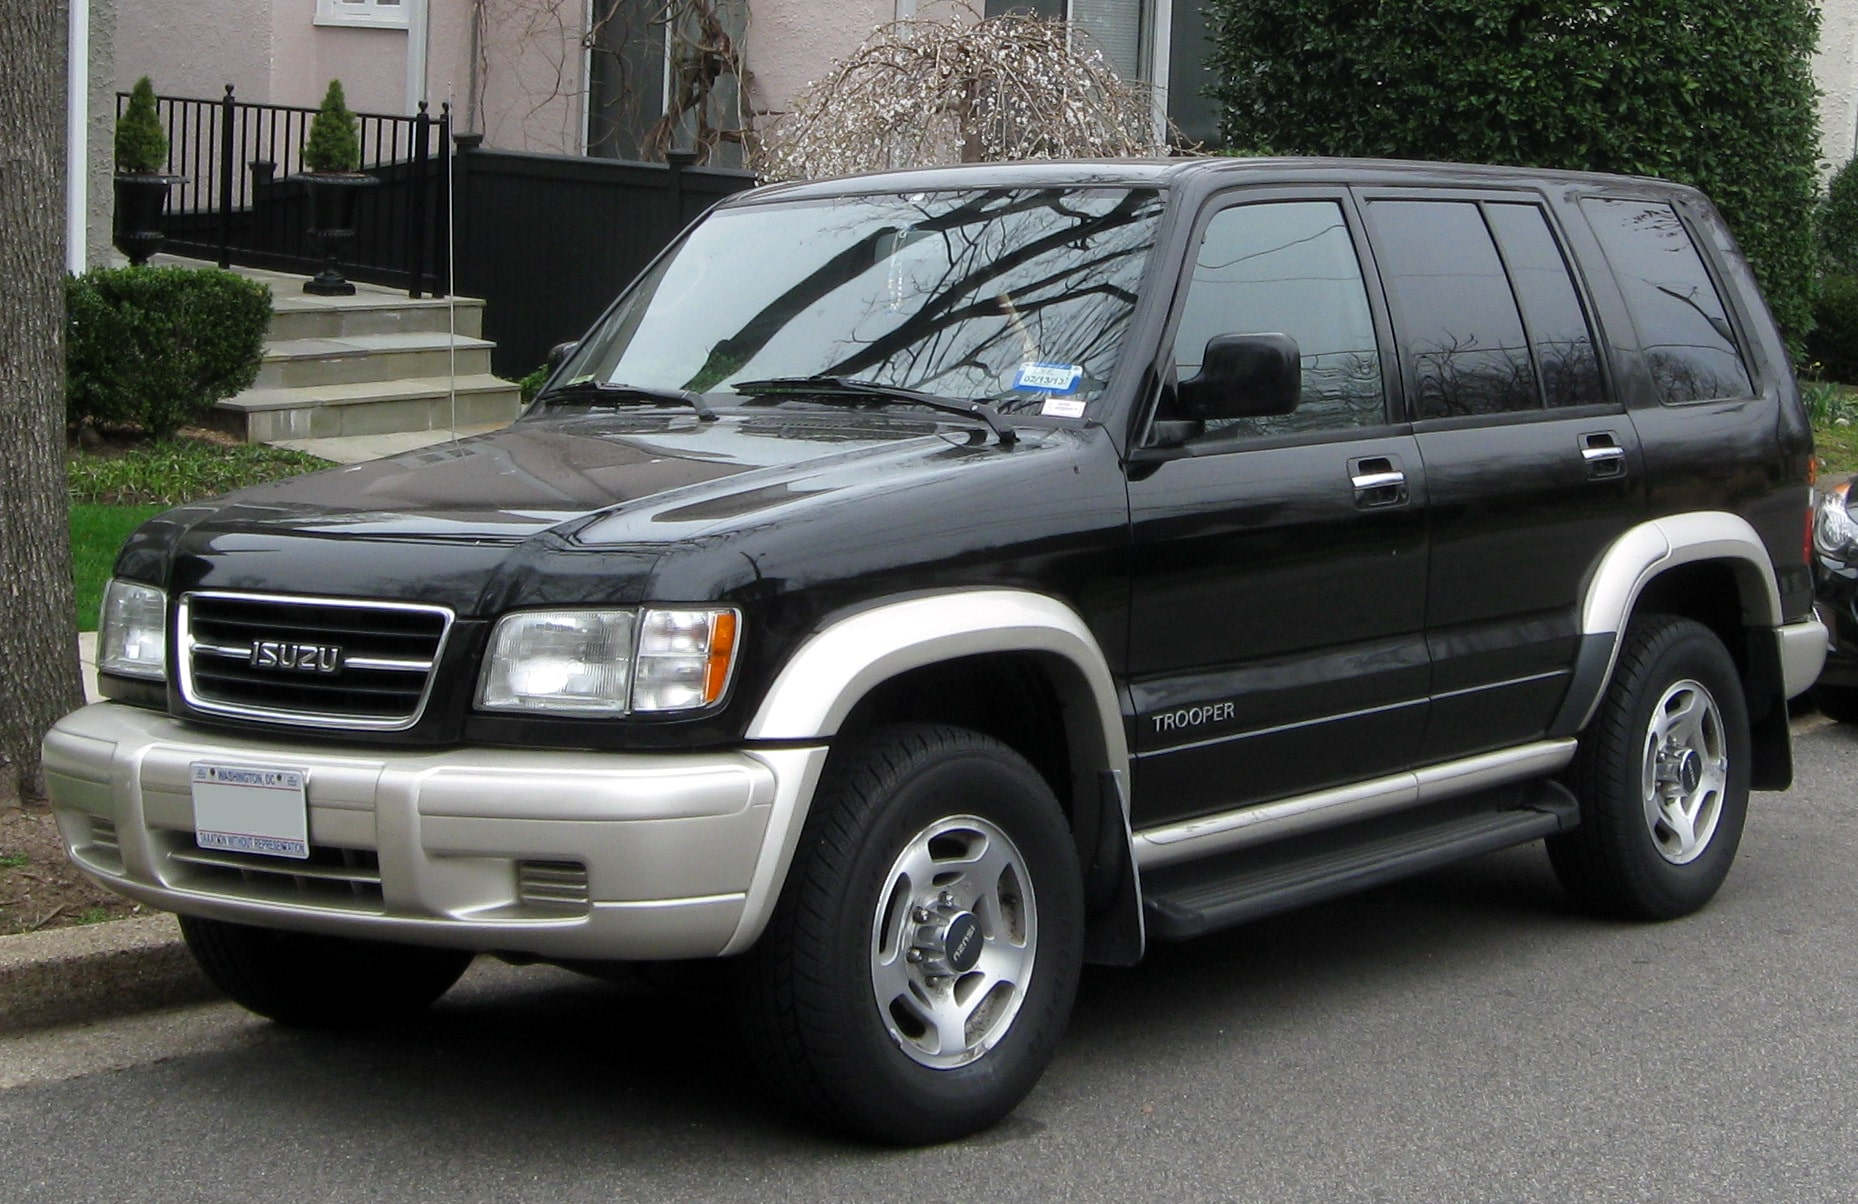 Isuzu Trooper Windshield Repair and Replacement